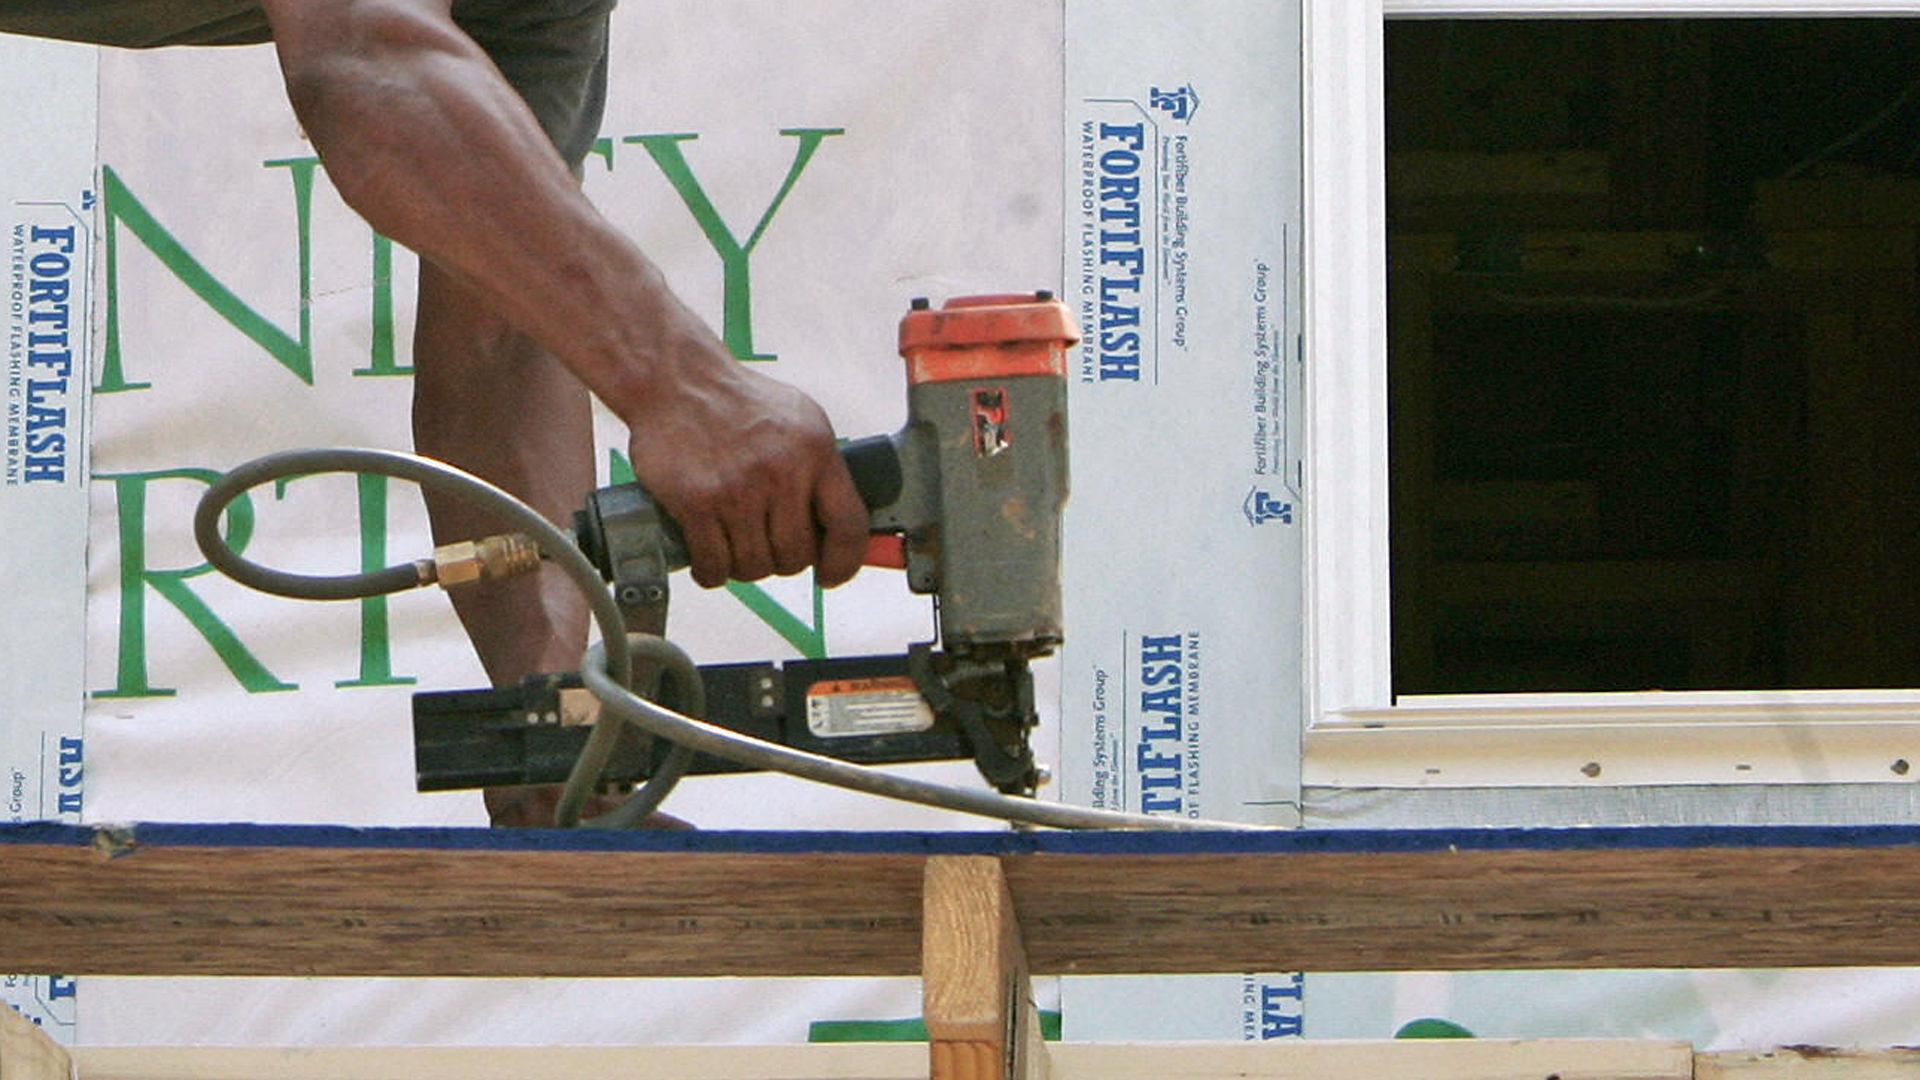 CENTREVILLE, UNITED STATES: (FILES) This 27 July, 2005 file photo shows a construction worker using his nail-gun during construction of a single family home in the Washington, DC, suburb of Centreville, Virginia. (Credit: Paul J. Richards/AFP/Getty Images)